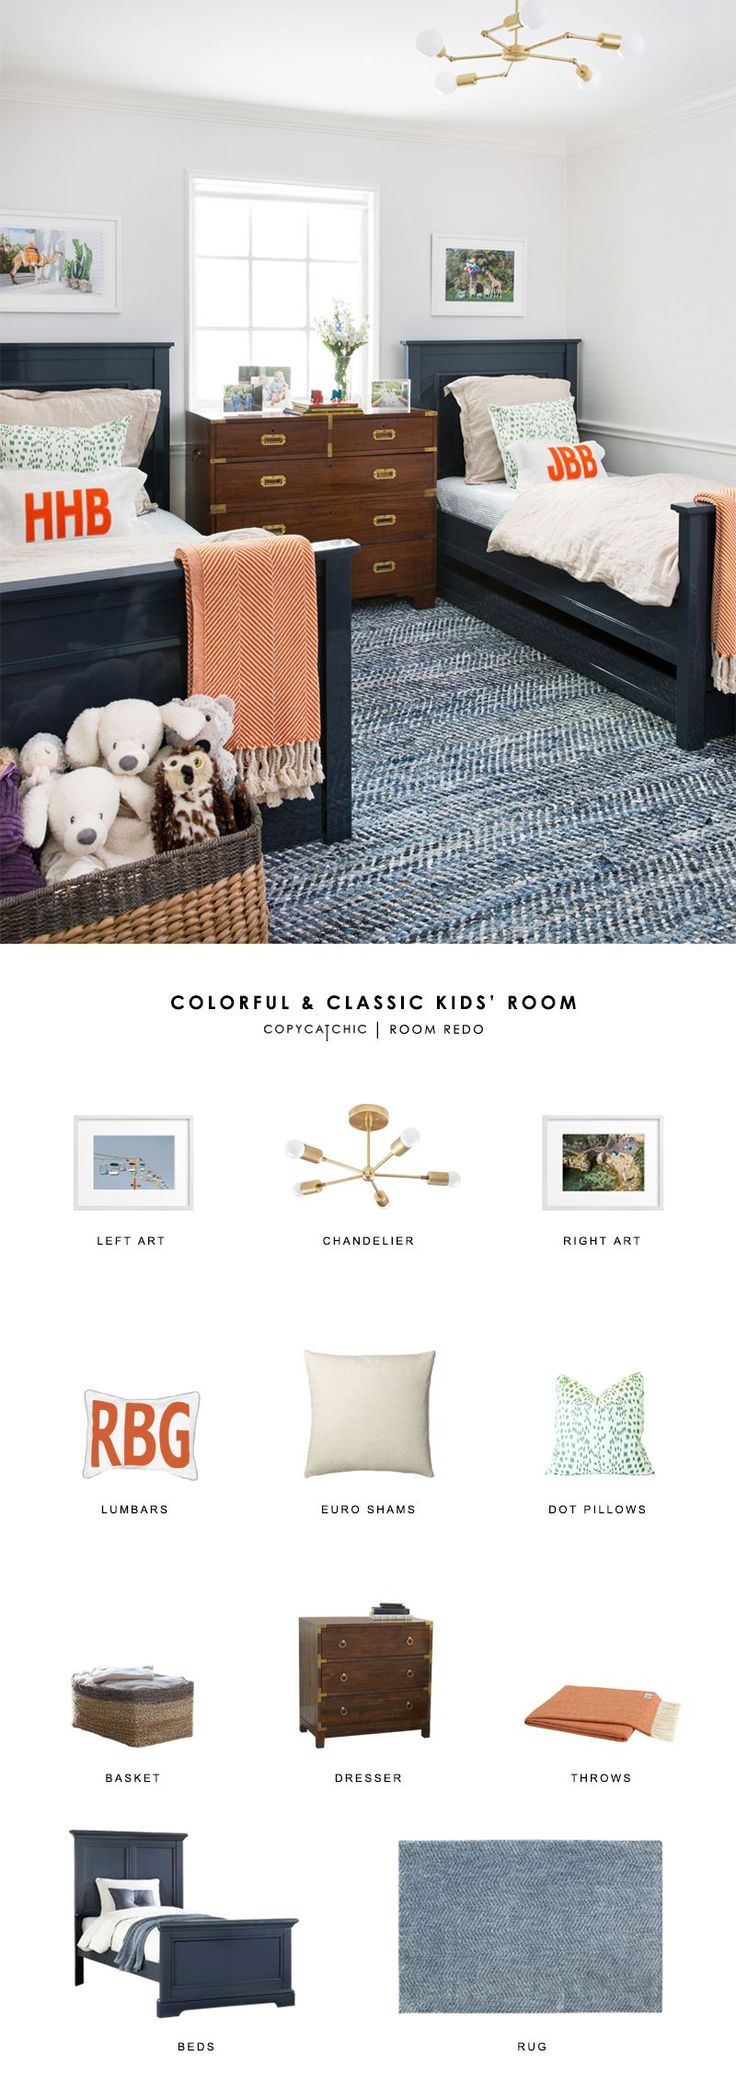 Copy Cat Chic Room Redo | Colorful and Classic Kids' Room